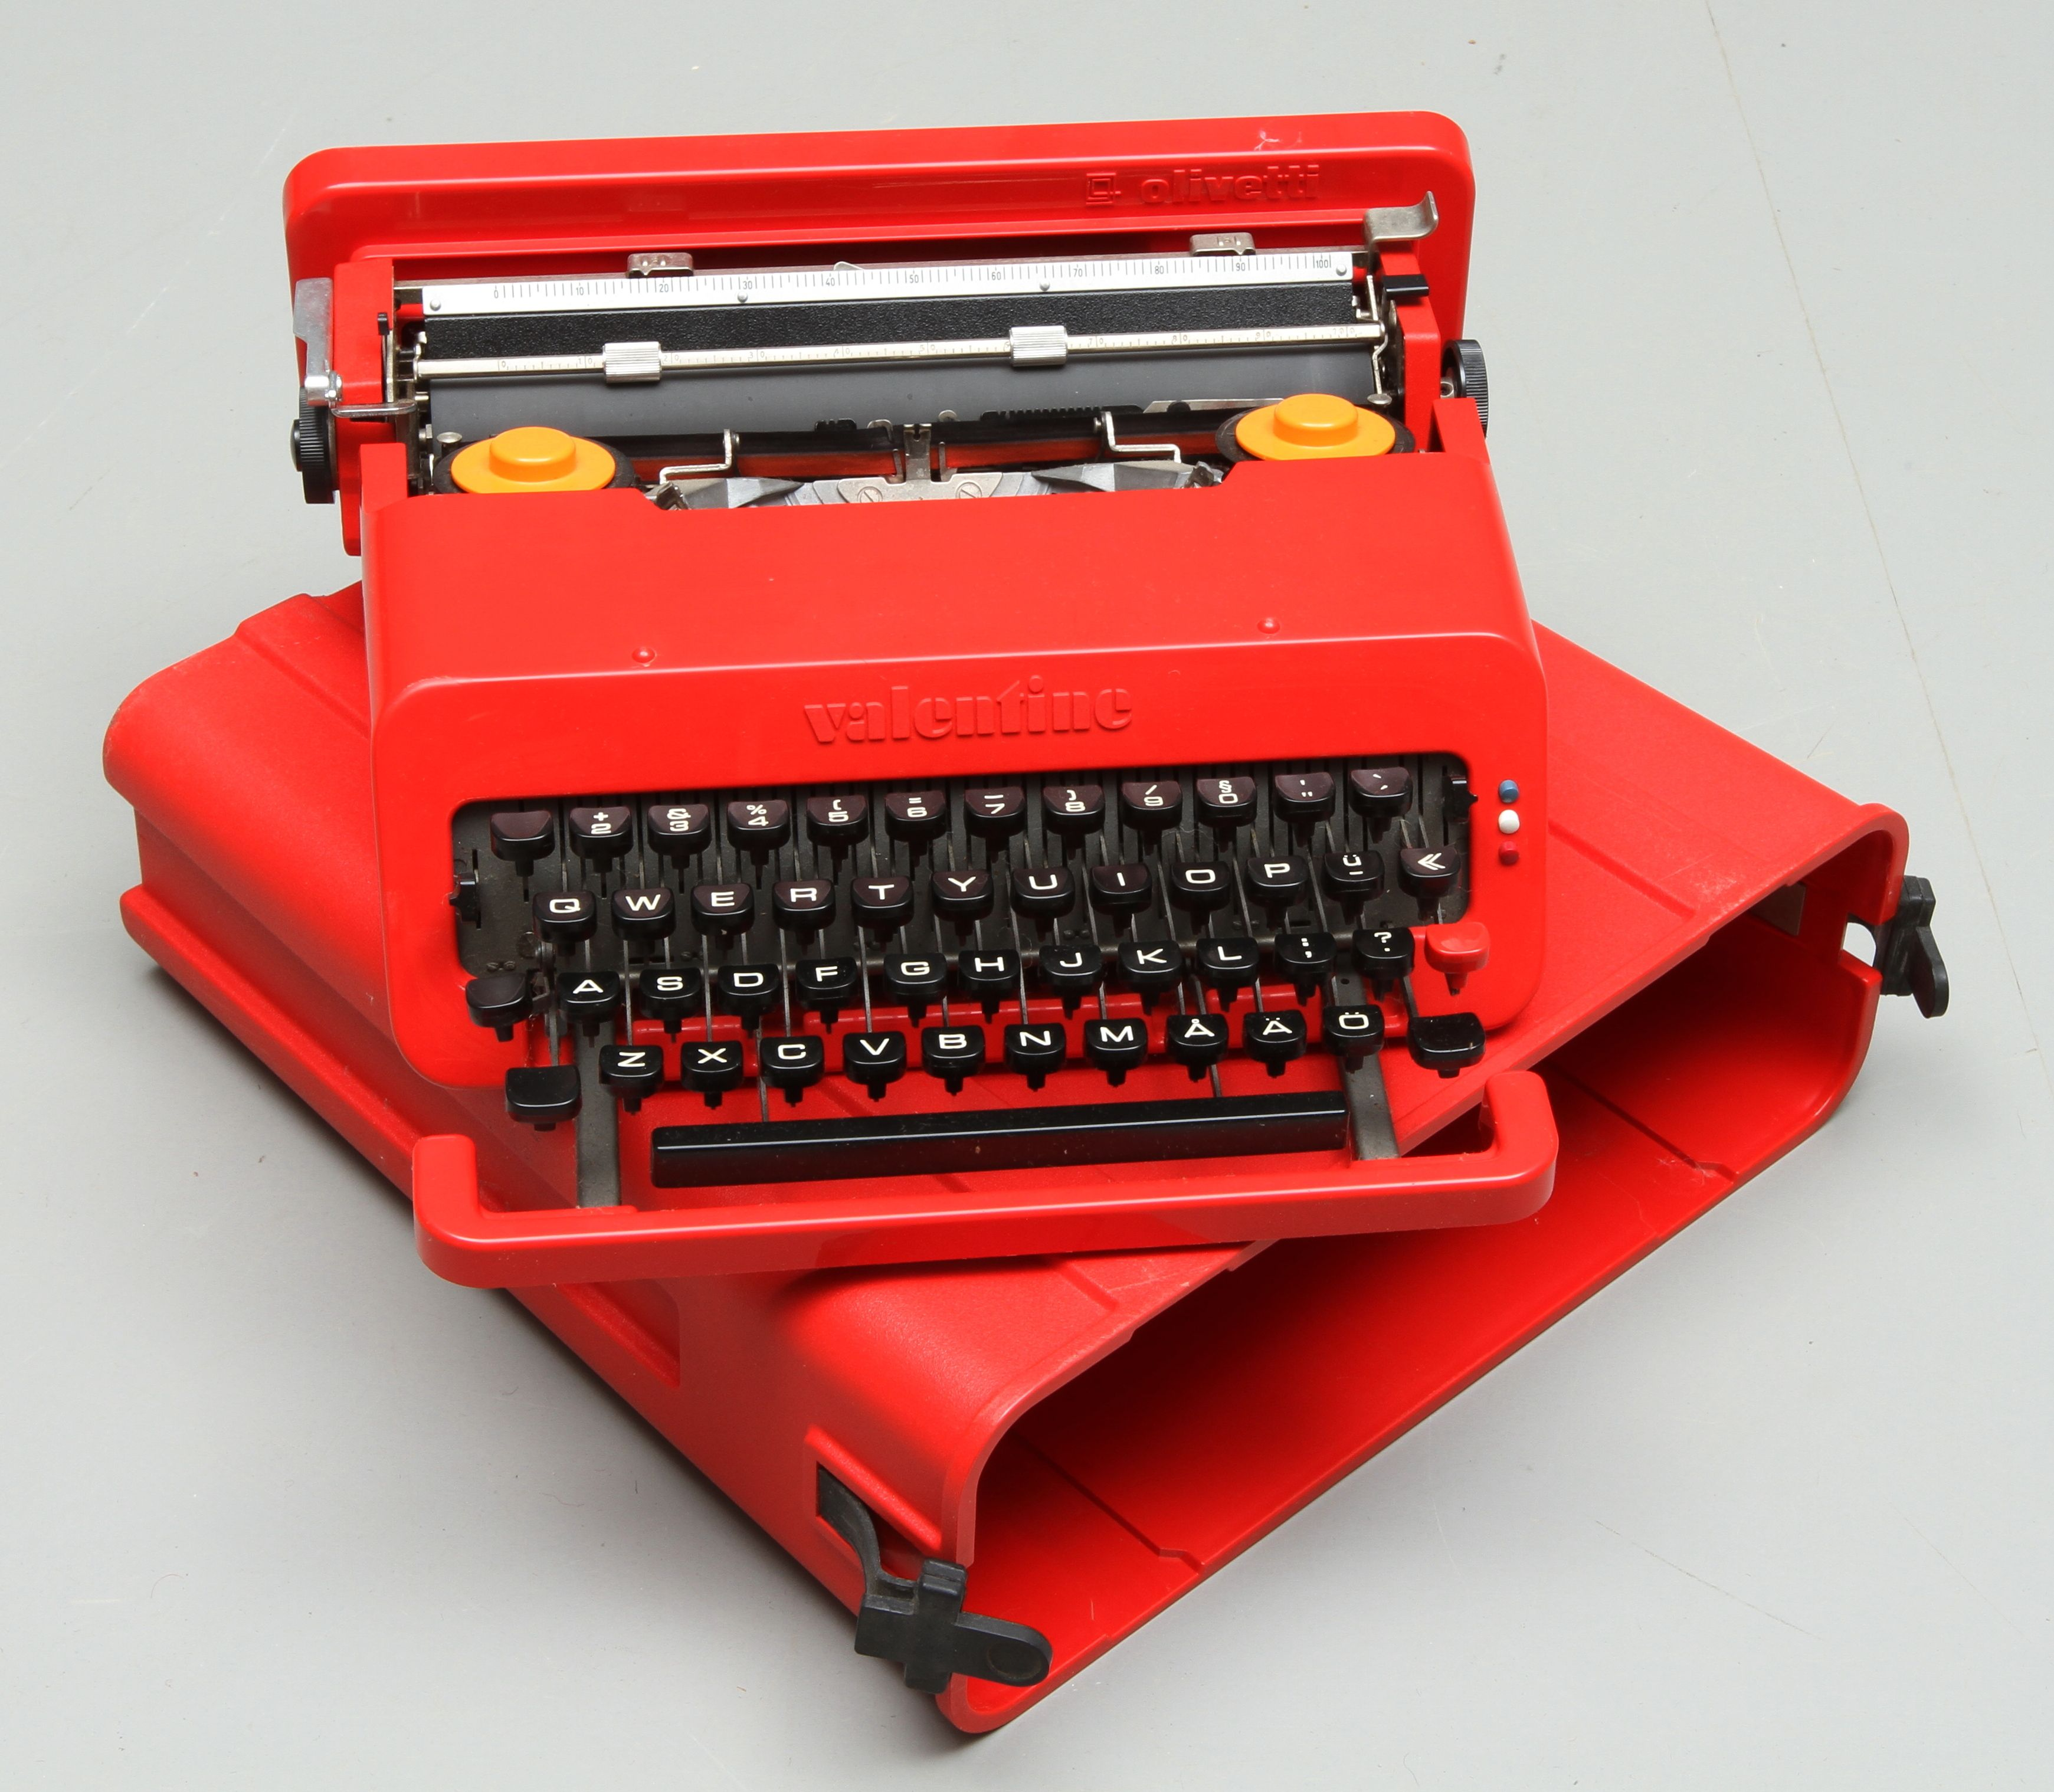 Explore The Enduring Influence Of Olivetti On Technology Design, A Future  Vision For Aleppo, Syria And The Reasons Behind Our Impulse To Collect  Objects